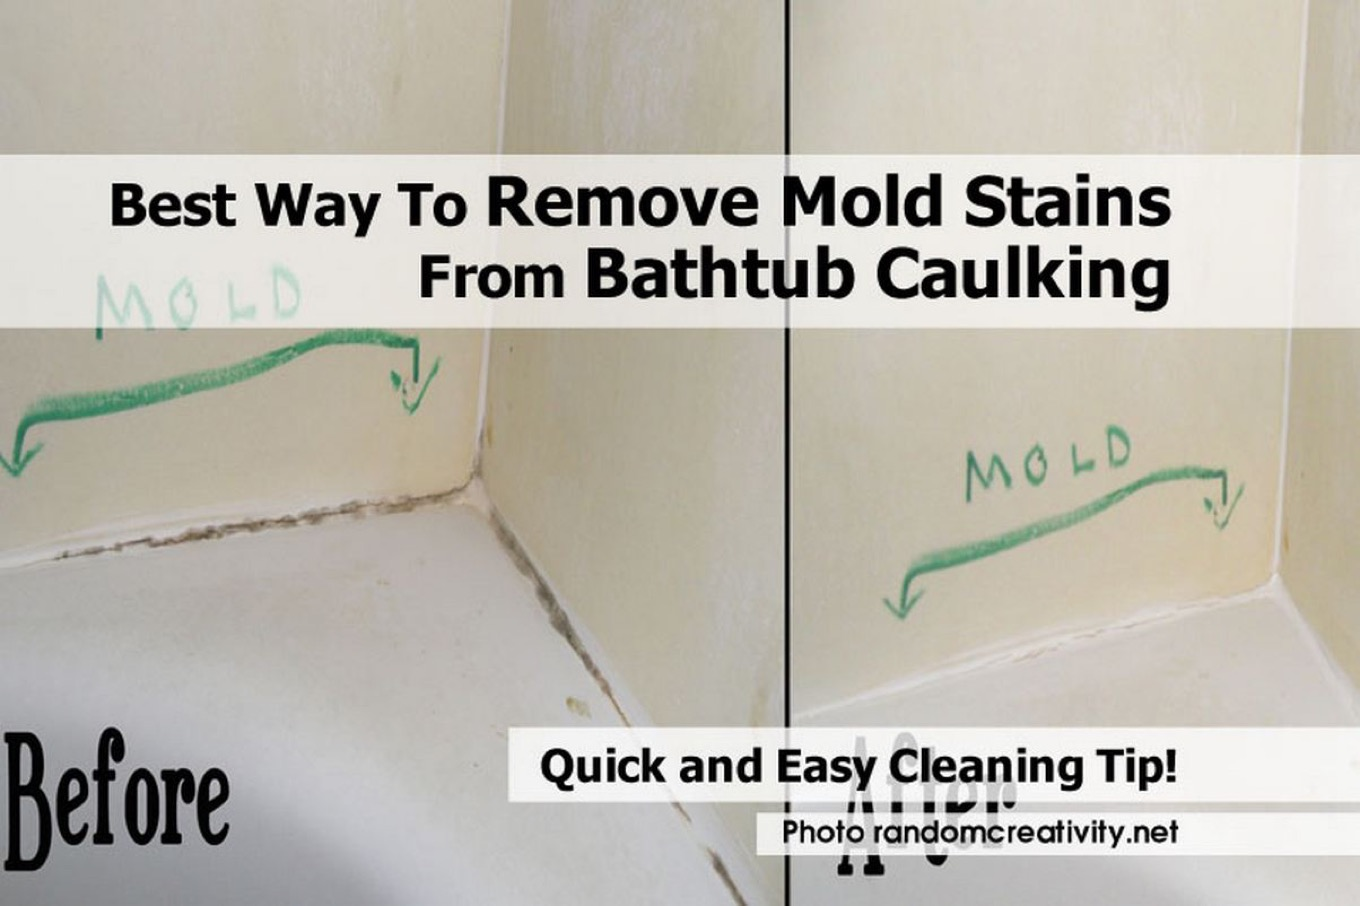 Best way to remove mold stains from bathtub caulking How to remove mold from bathroom tiles